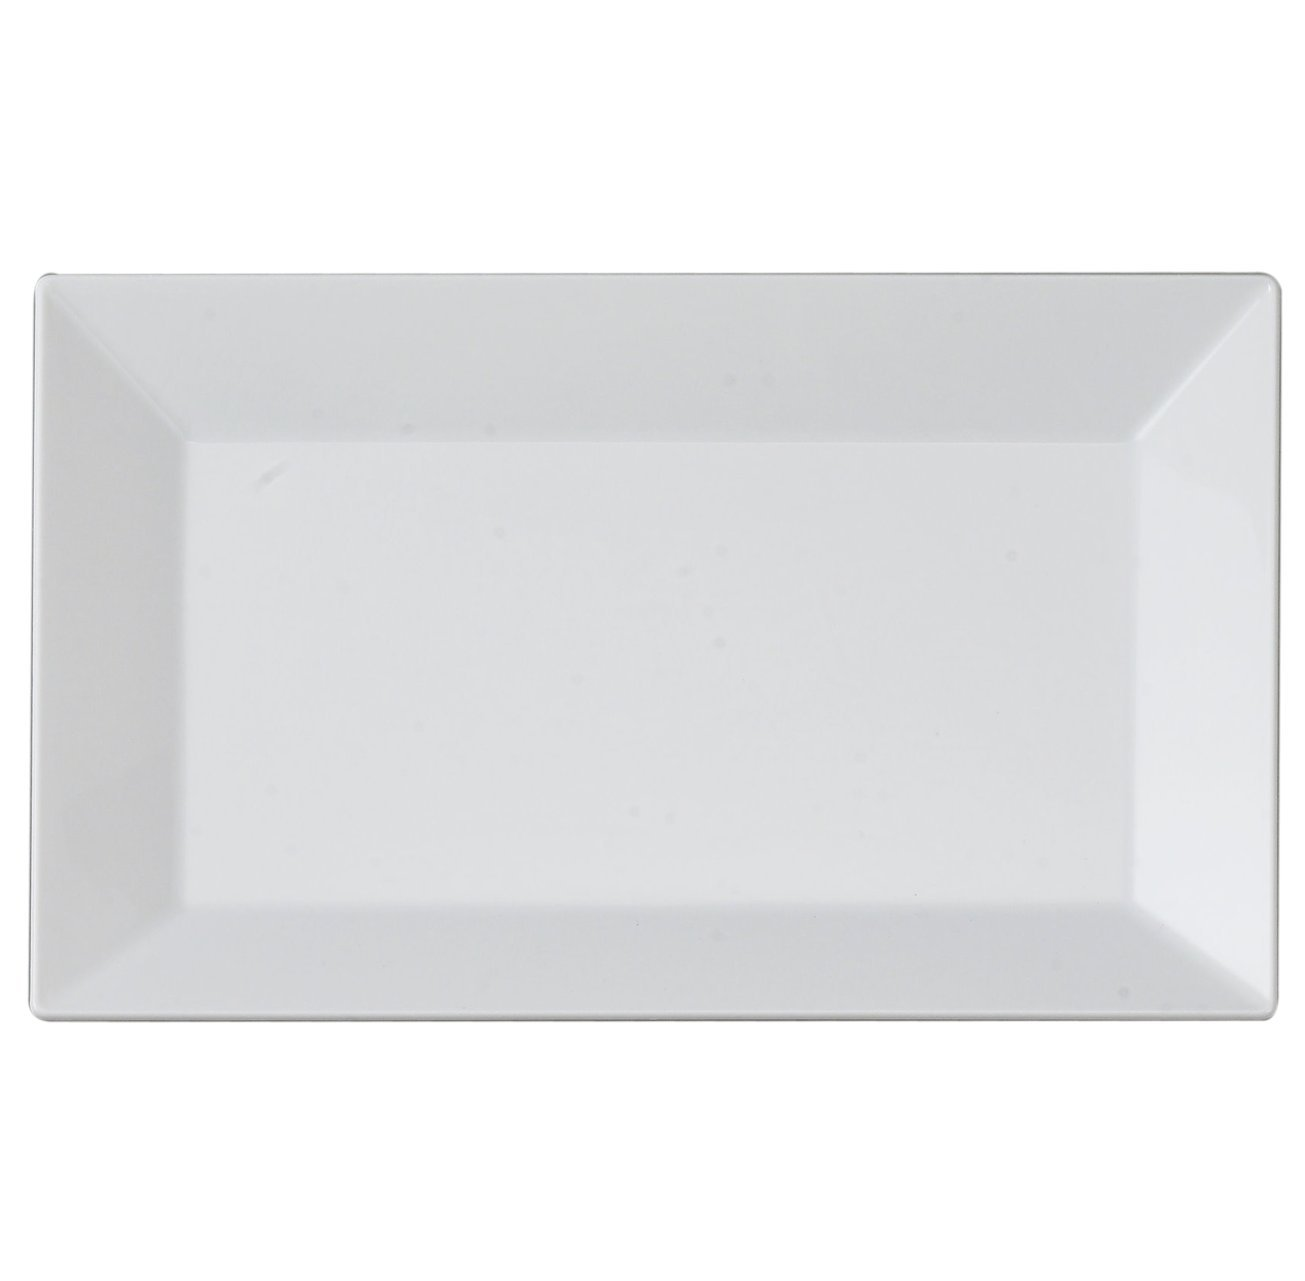 Kaya Collection - White Plastic Rectangle Salad/Dessert Plates - Disposable or Reusable - 2 Pack (20 Plates)